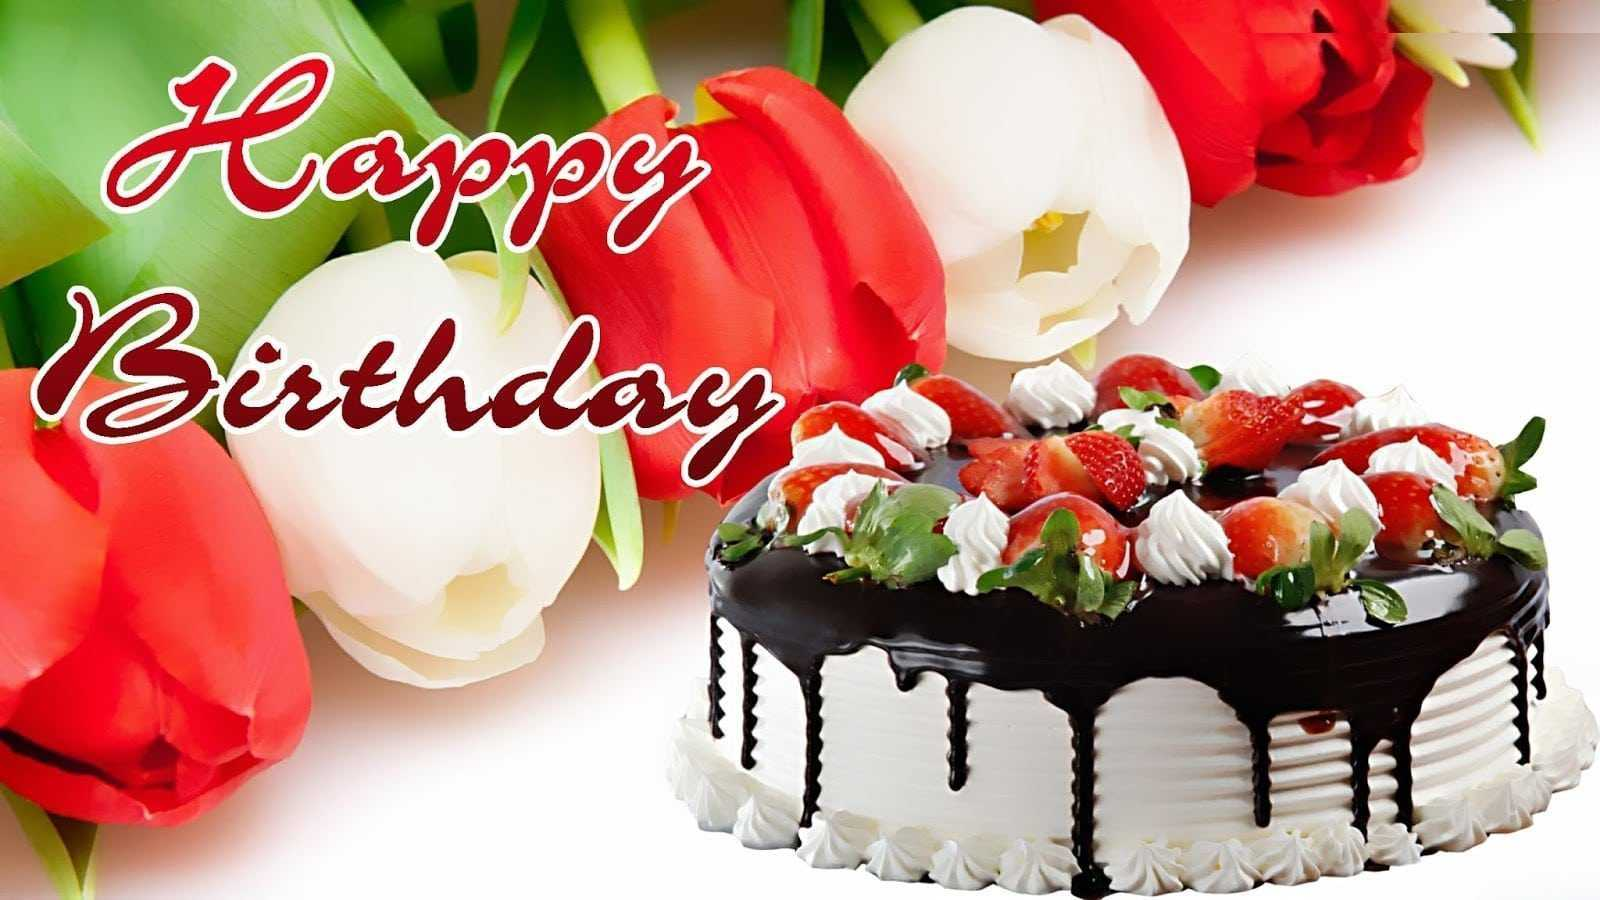 Happy Birthday Wishes Wallpapers Free Wallpaper Cave